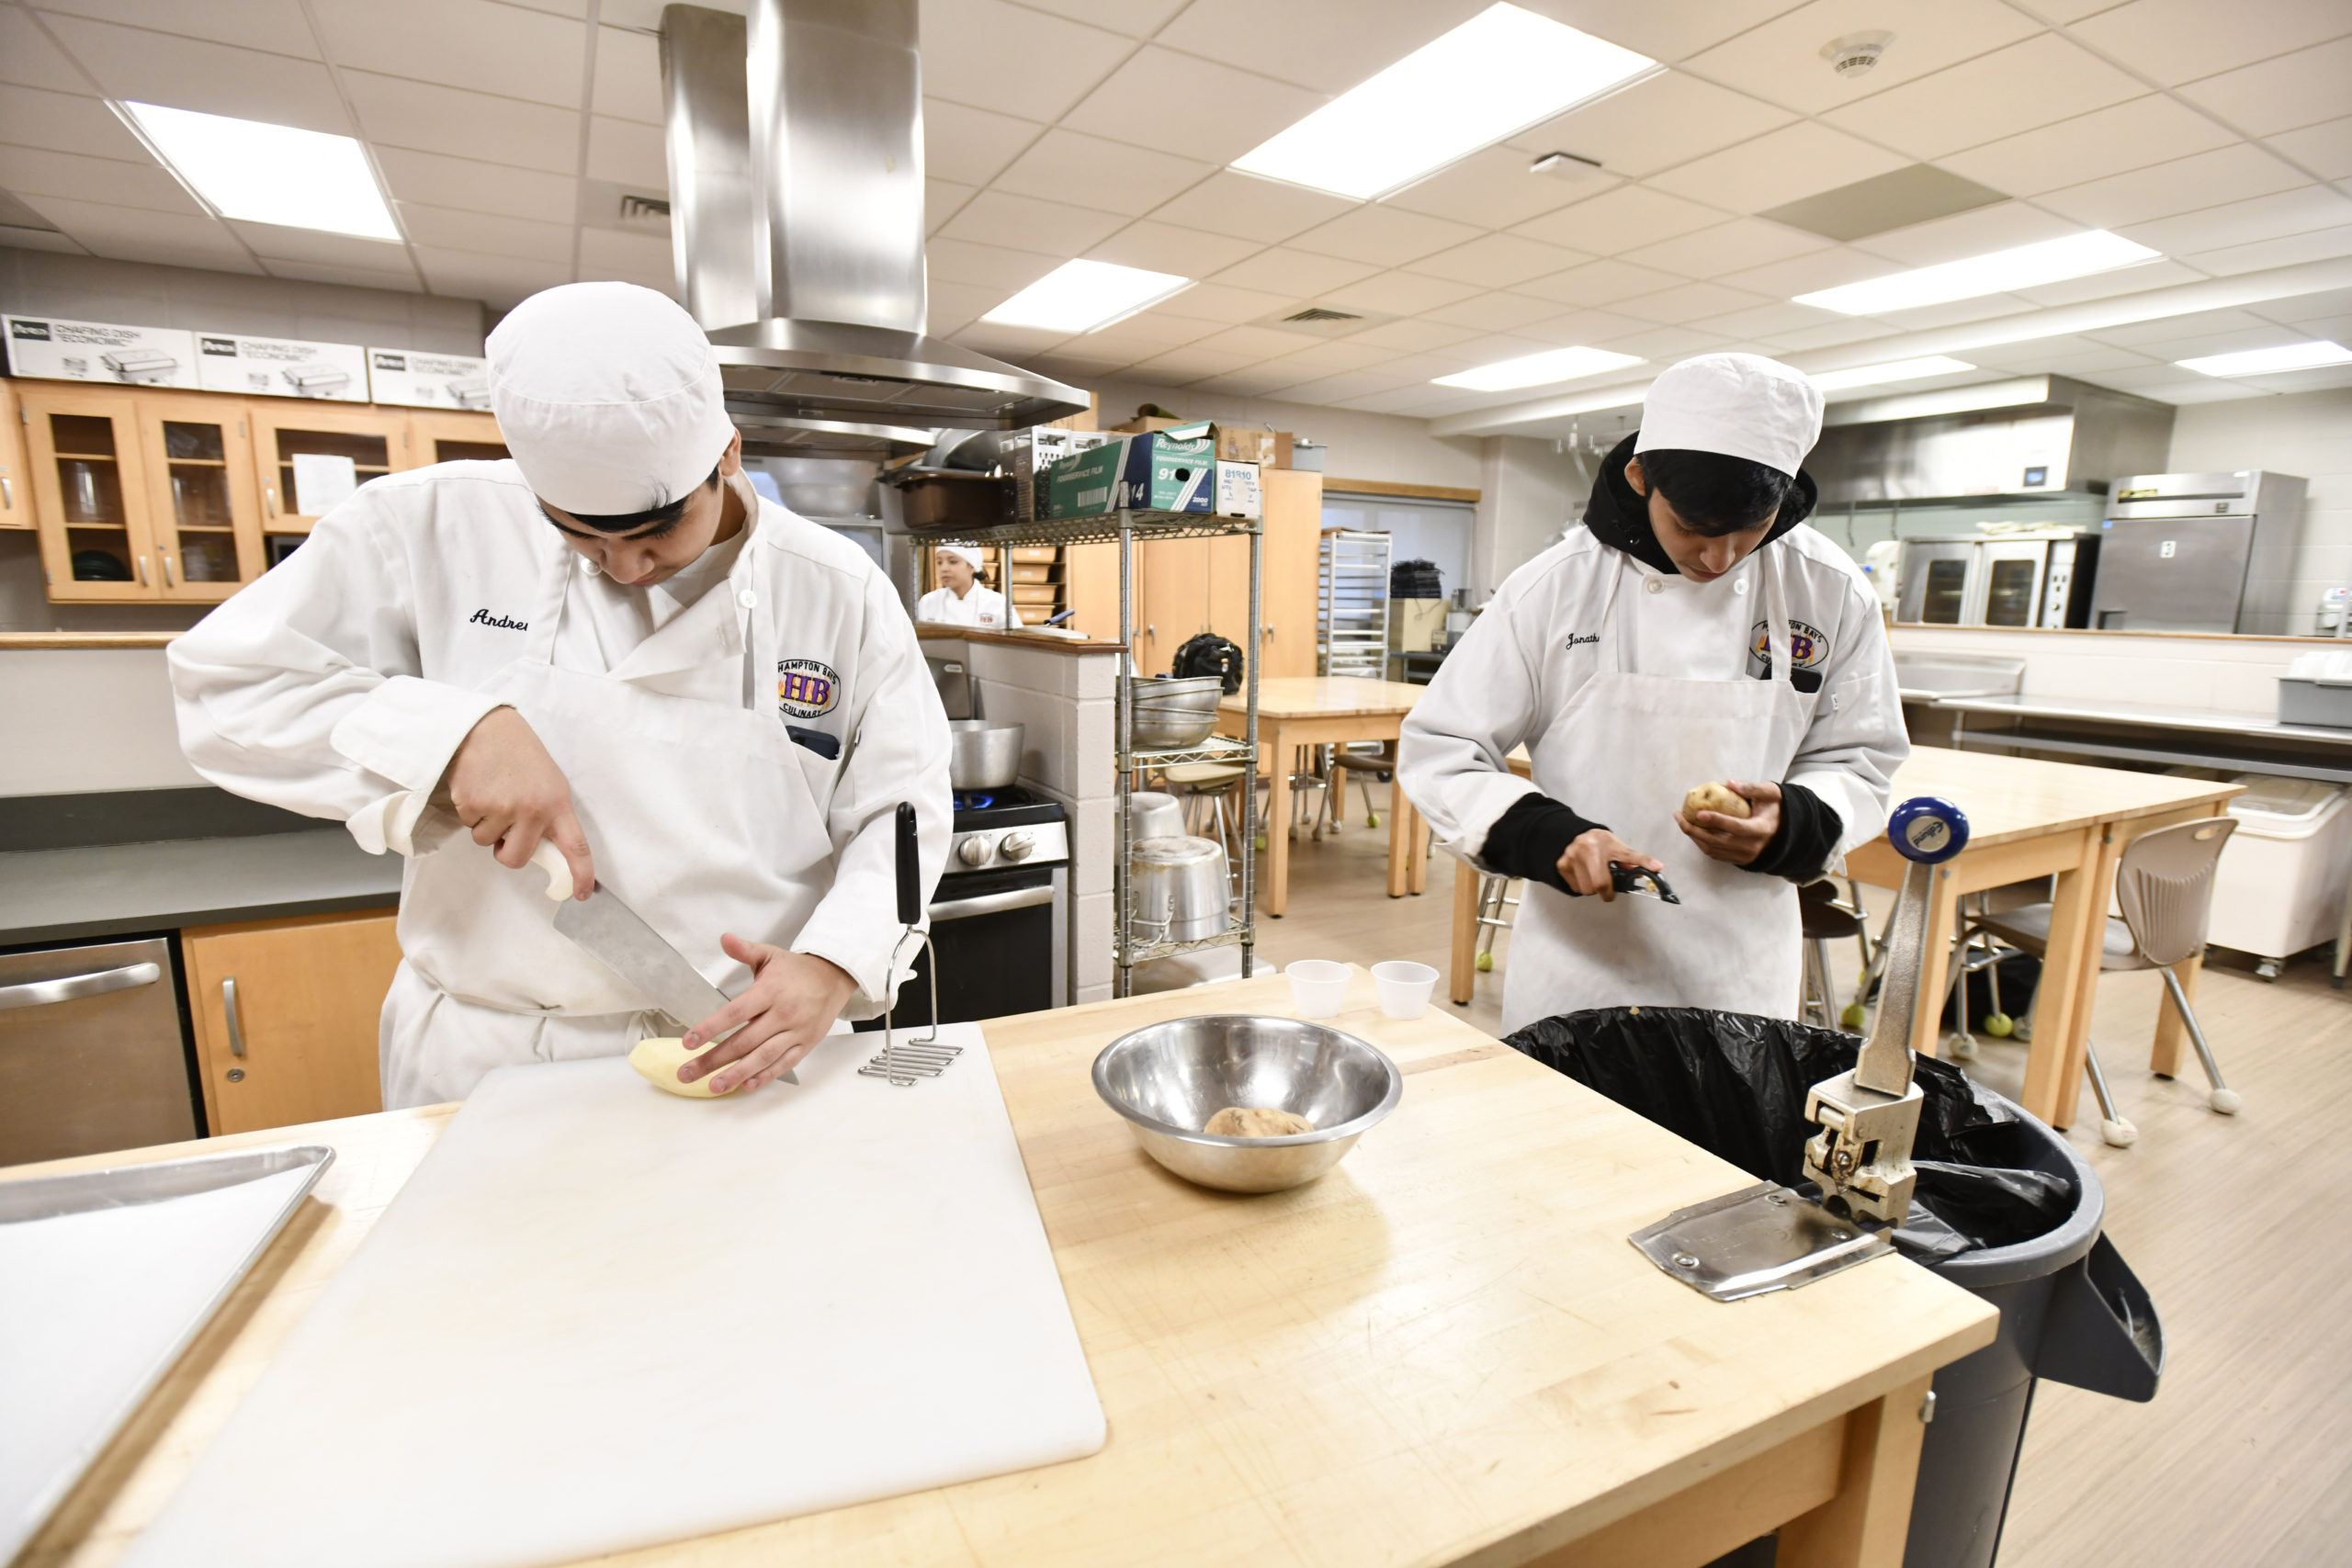 Students Andrew Avila and Jonathan Aquilar at work in the kitchen during the culinary class at Hampton Bays High School.  DANA SHAW